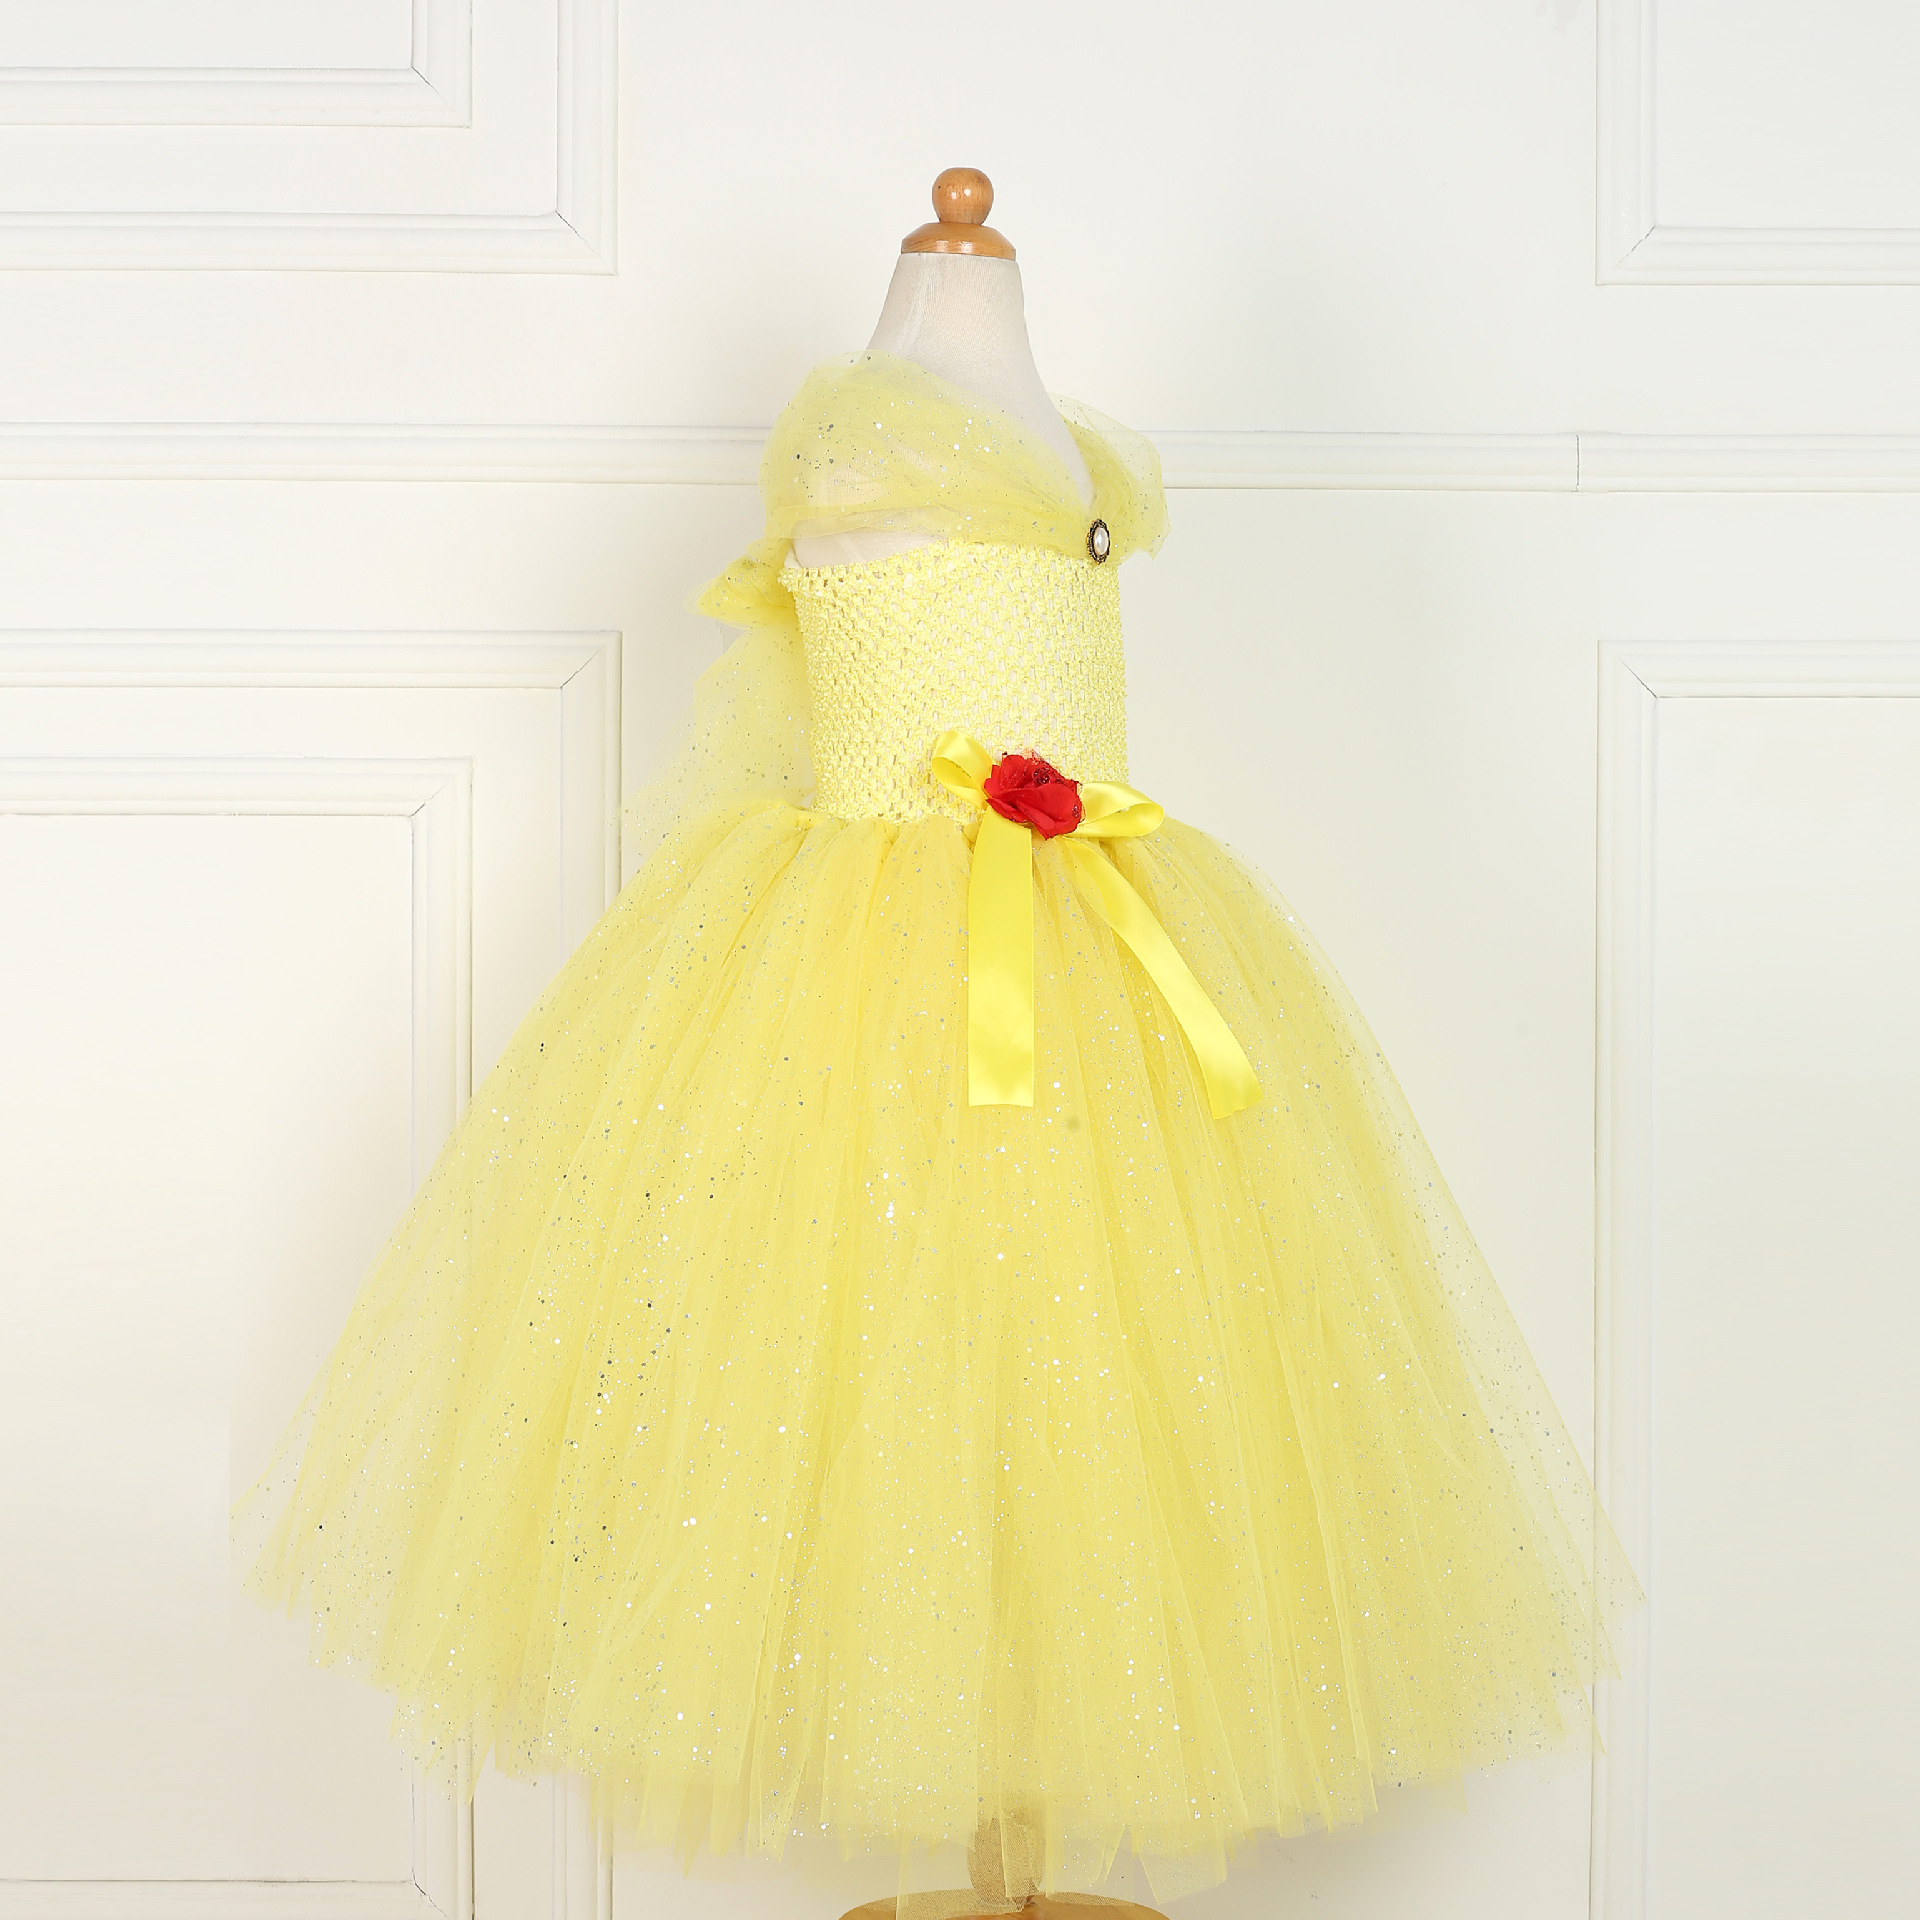 Aliexpress Buy Beauty and The Beast 2018 Children Clothing